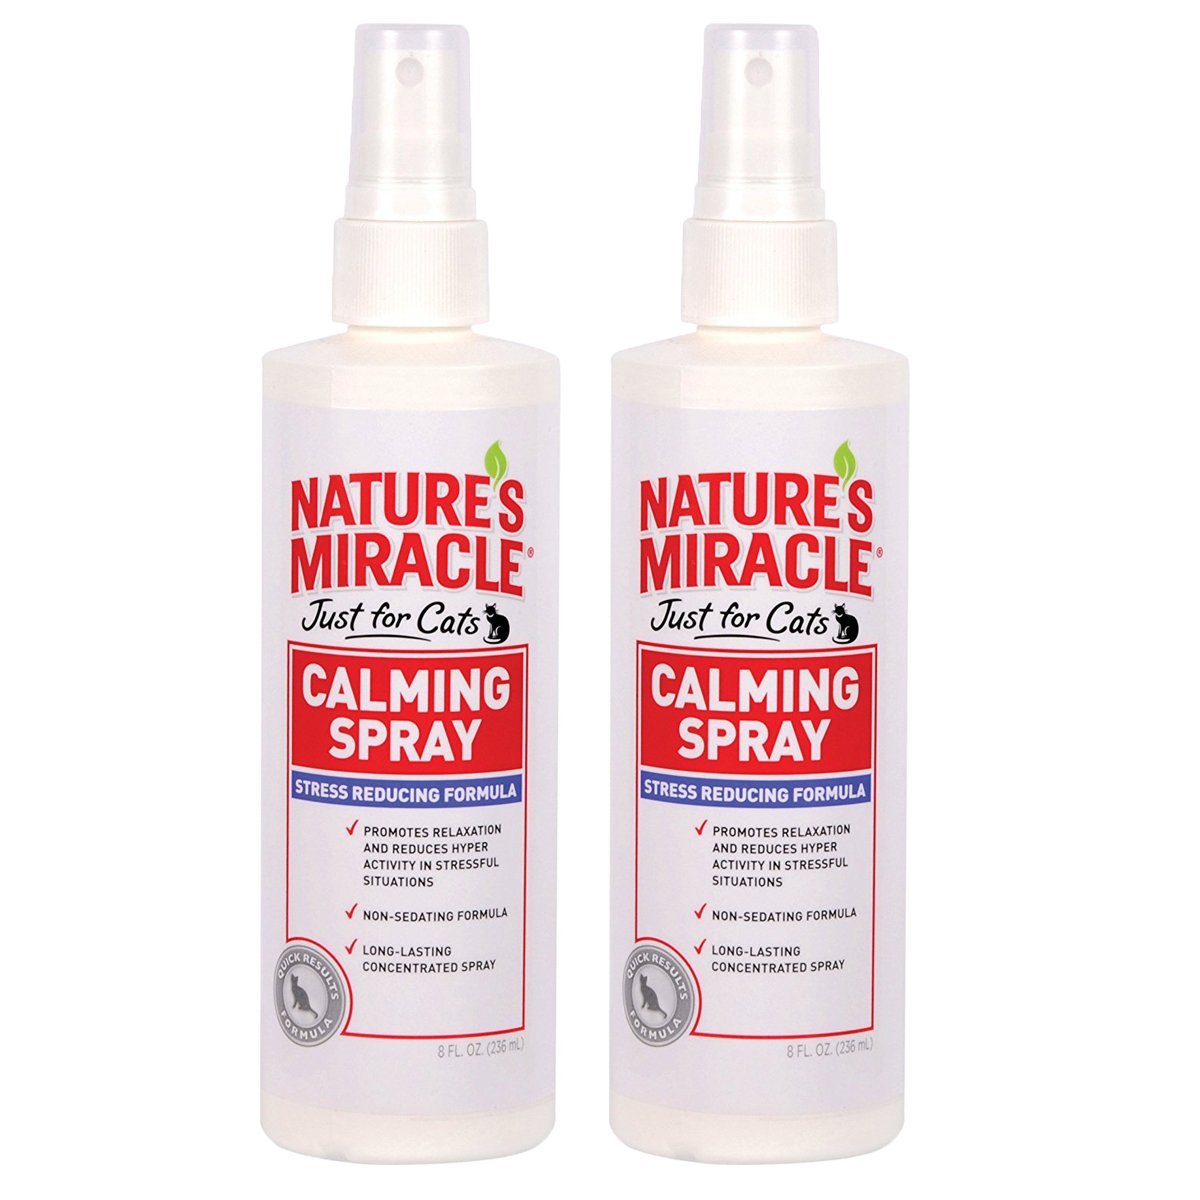 Nature's Miracle Just for Cats Calming Spray Stress Reducing Formula, 16-ounce (P-5780)